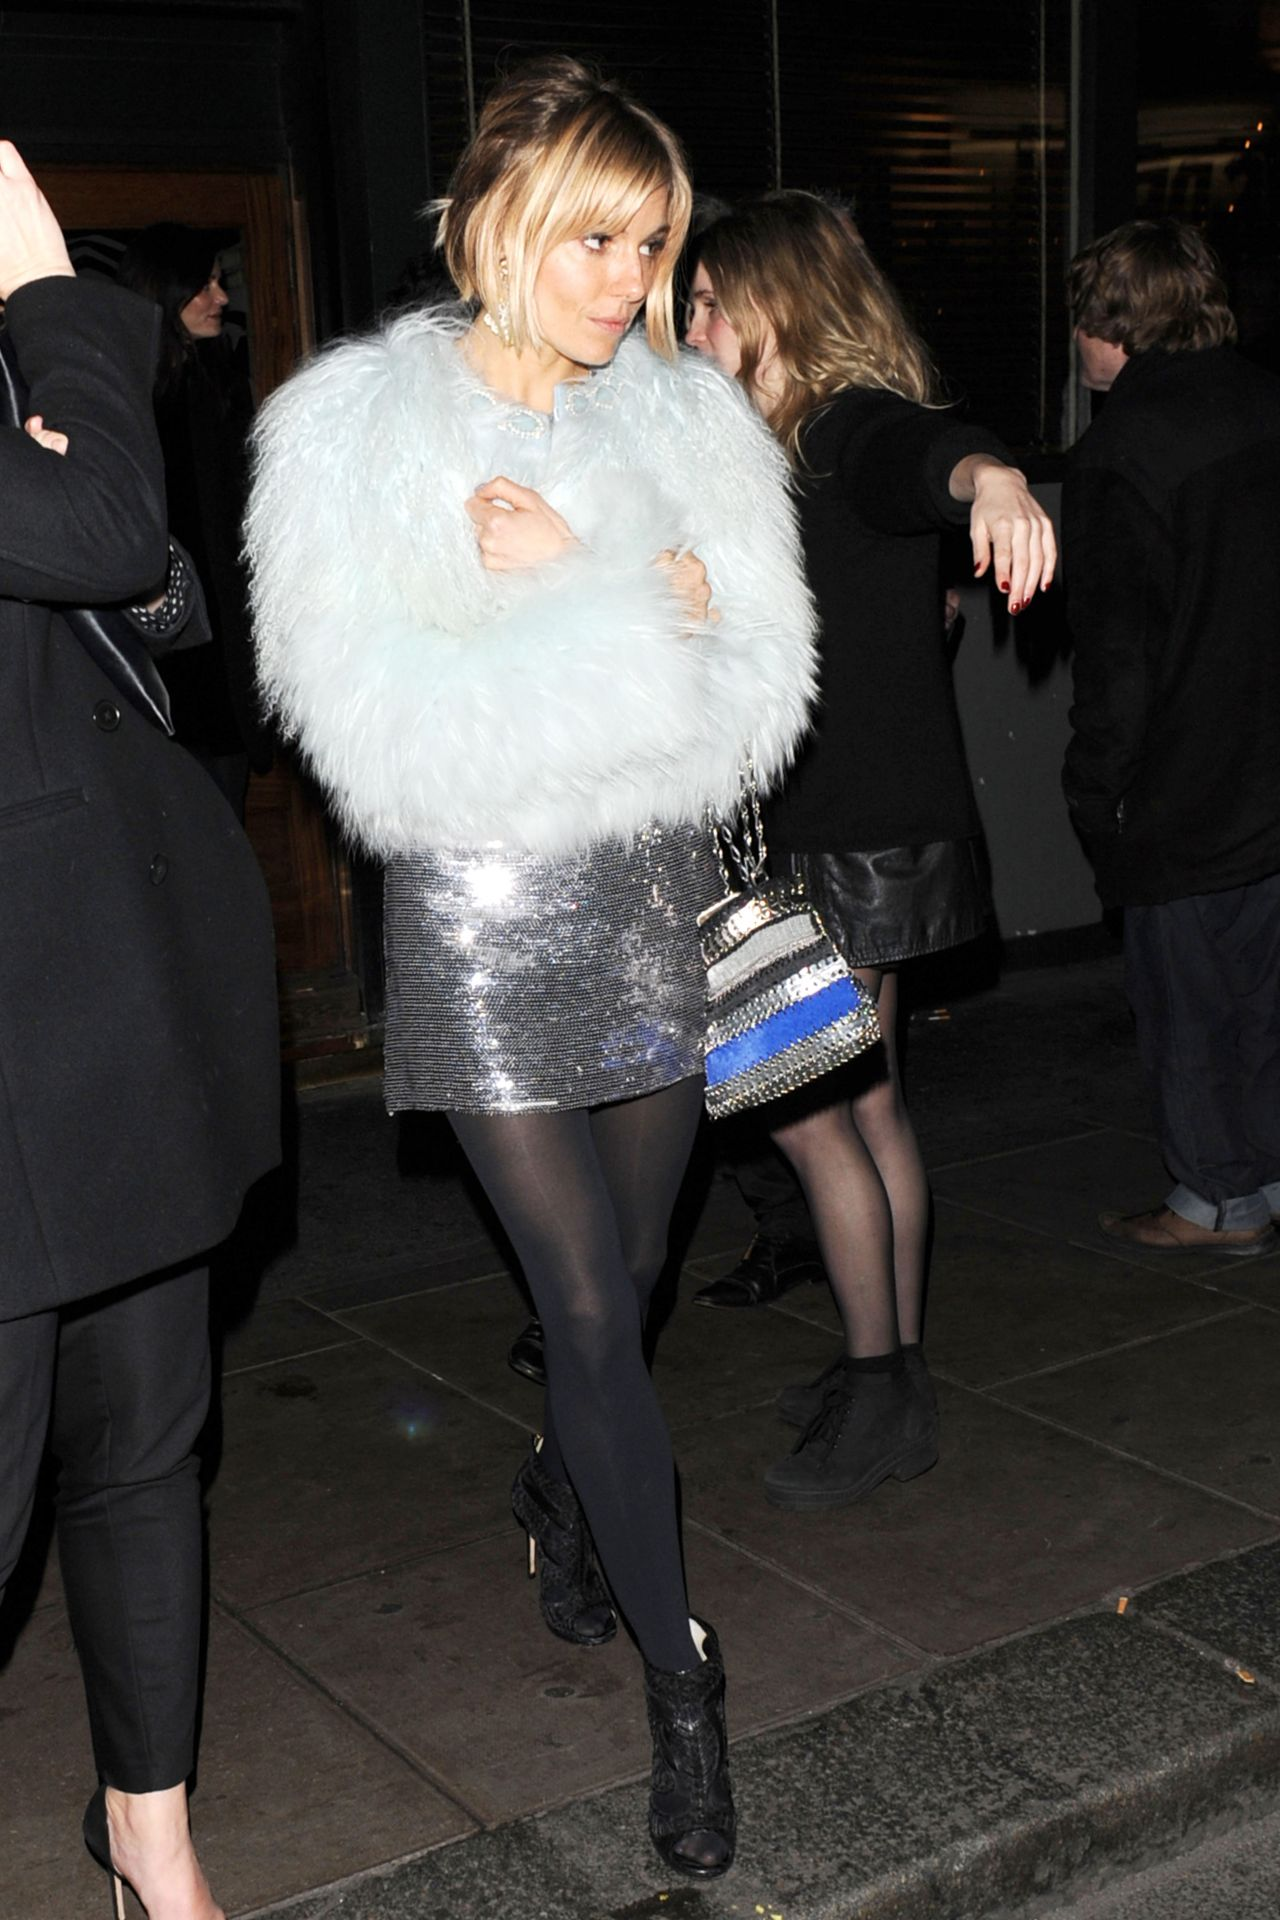 sienna-miller-night-out-style-groucho-club-arrival-in-london-december-2014_1